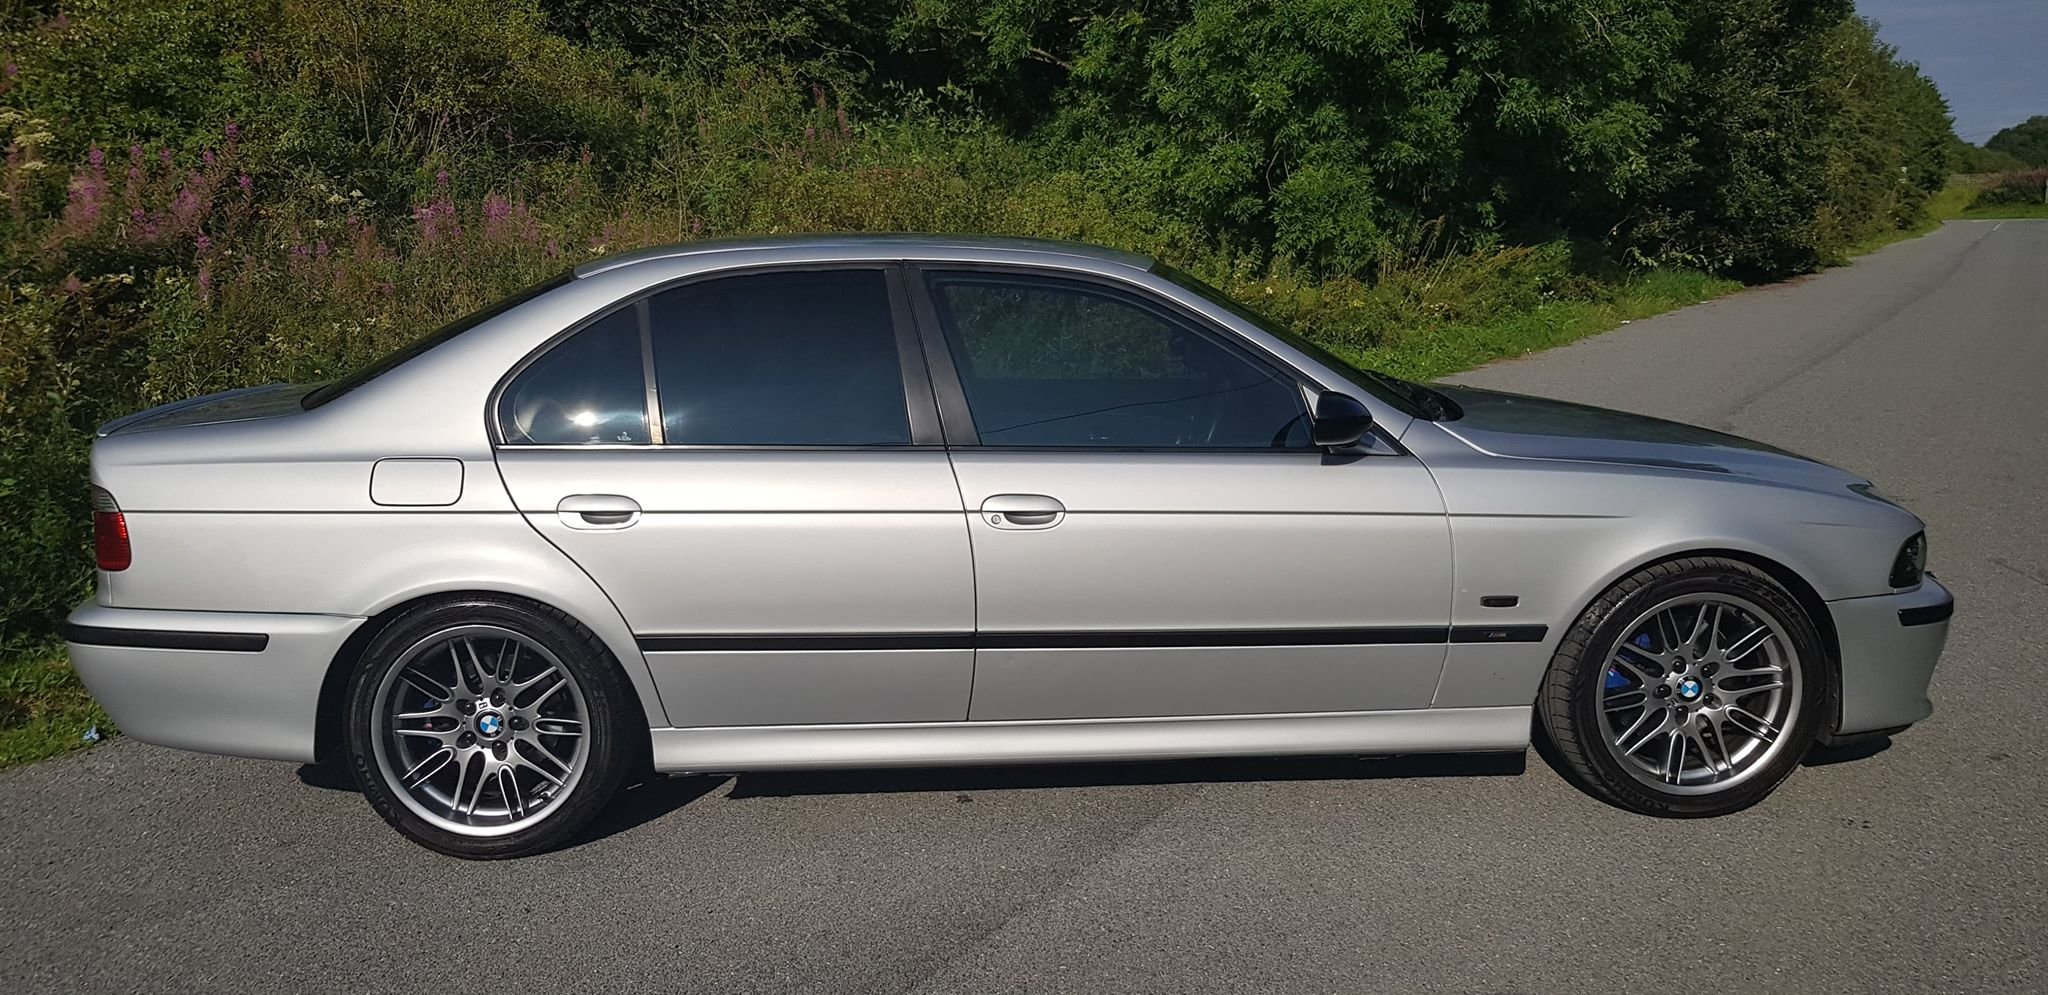 2001 Bmw 530i m-sport auto immaculate For Sale (picture 2 of 6)